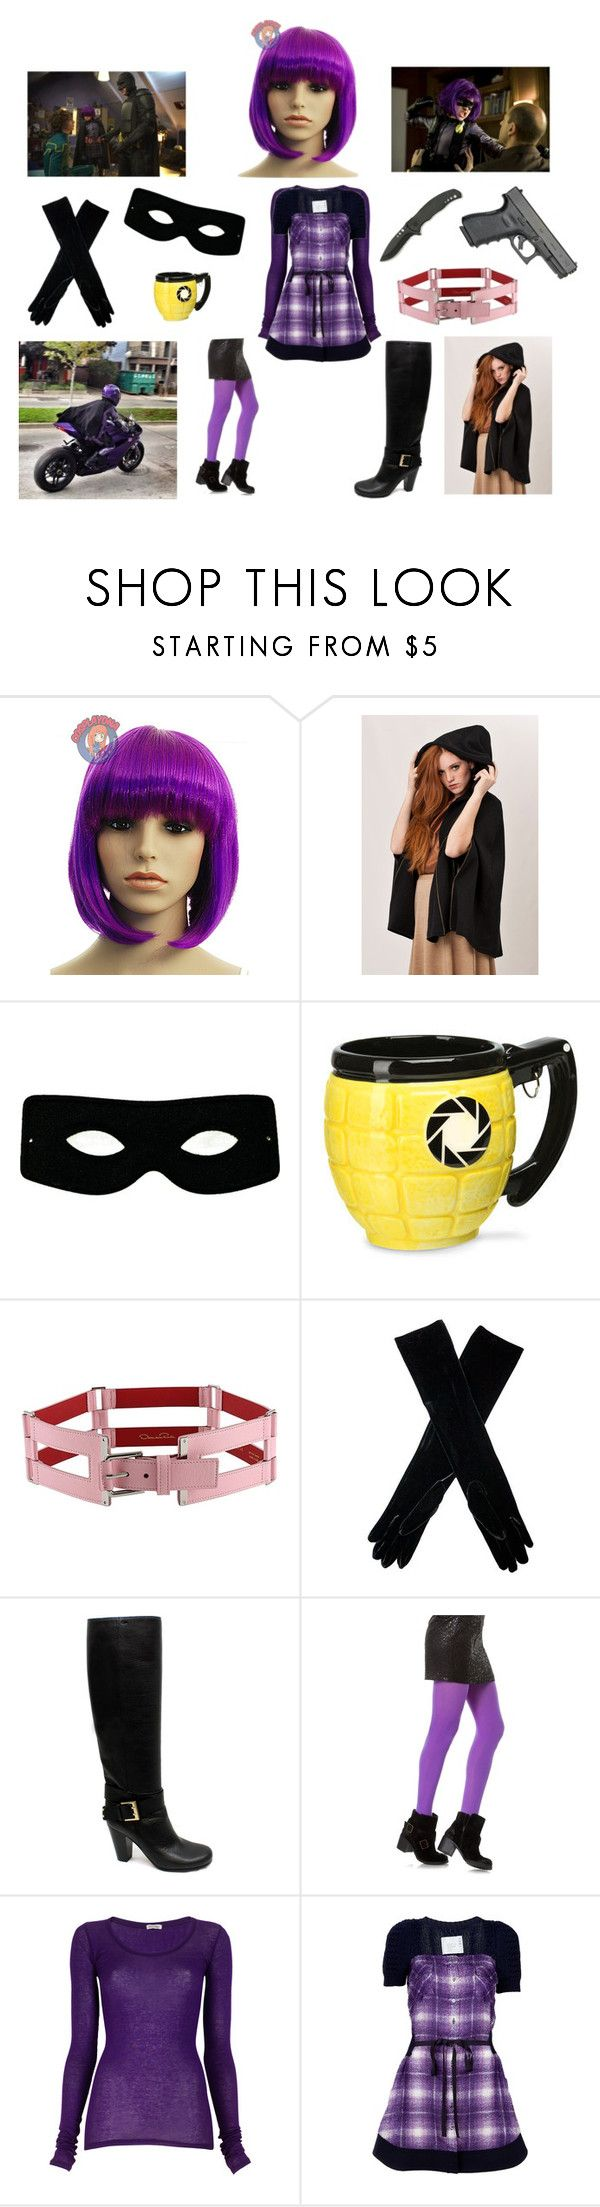 """""""Hit Girl Costume Ideas"""" by ashleah ❤ liked on Polyvore featuring Chloé, Masquerade, Oscar de la Renta, Alexon, S'well, American Vintage, Sacai and POLICE"""